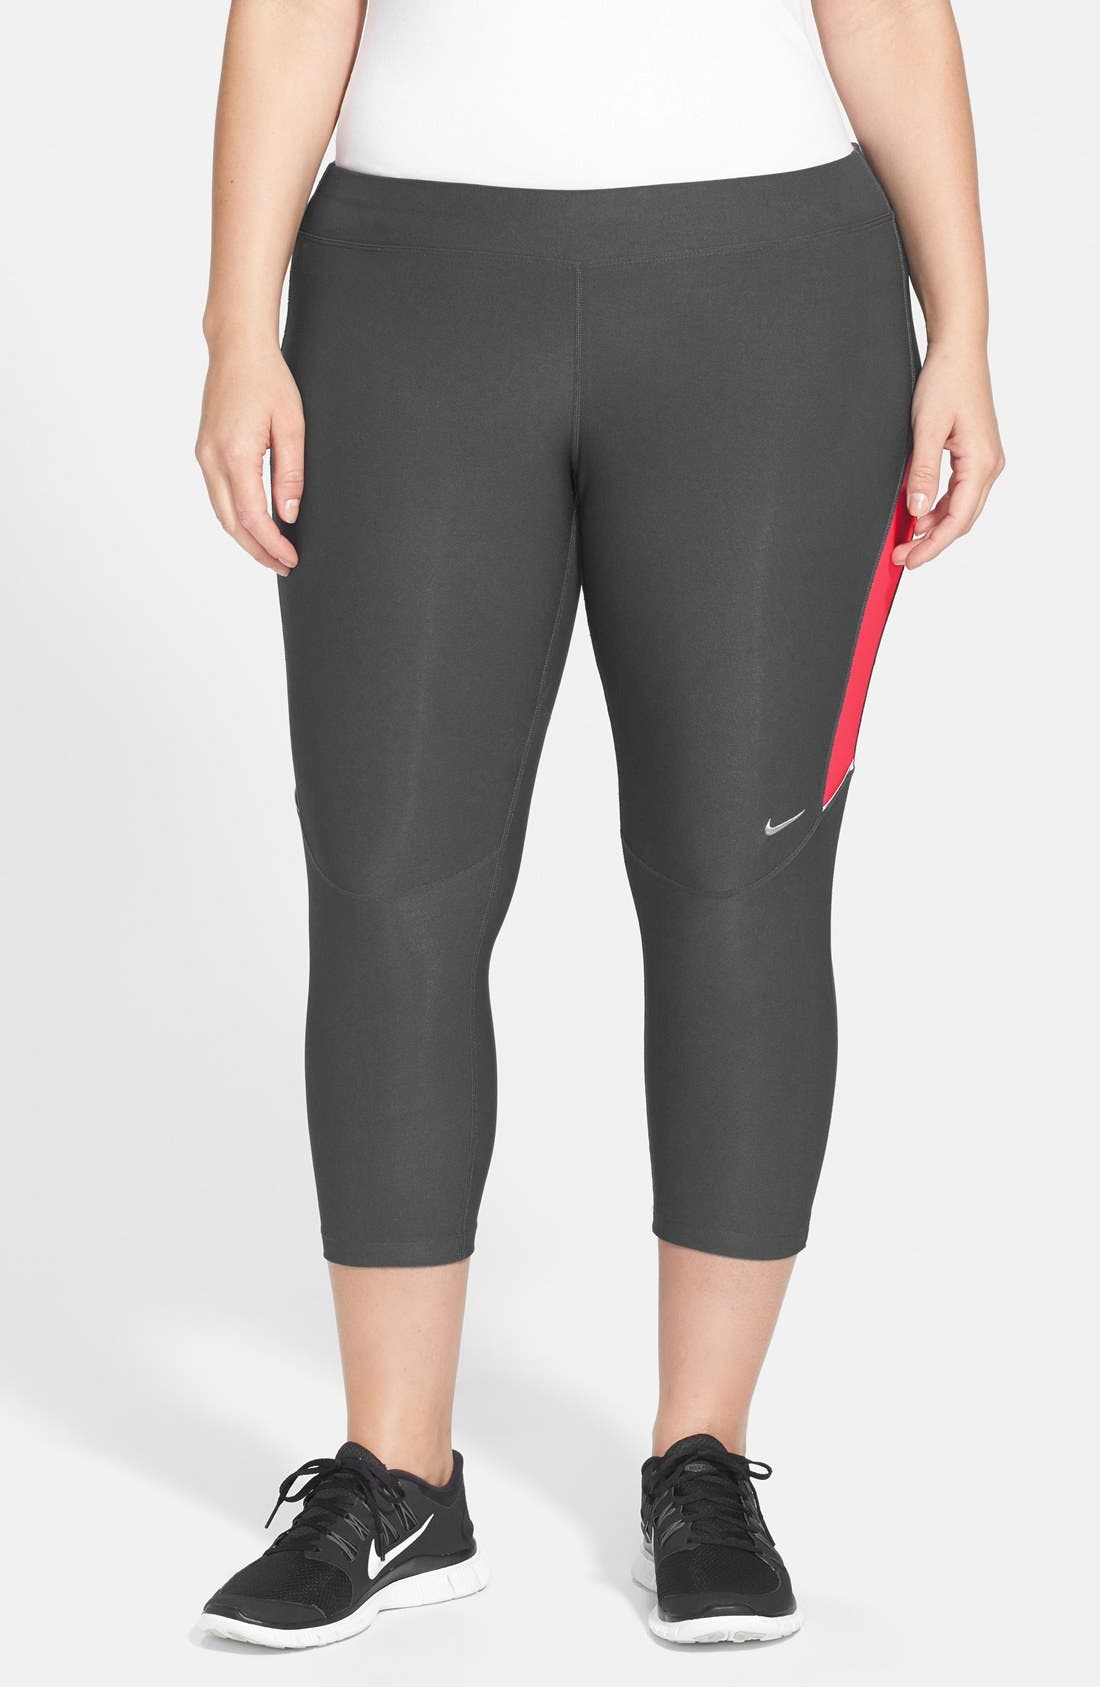 Alternate Image 1 Selected - Nike 'Filament' Capris (Plus Size) (Online Only)